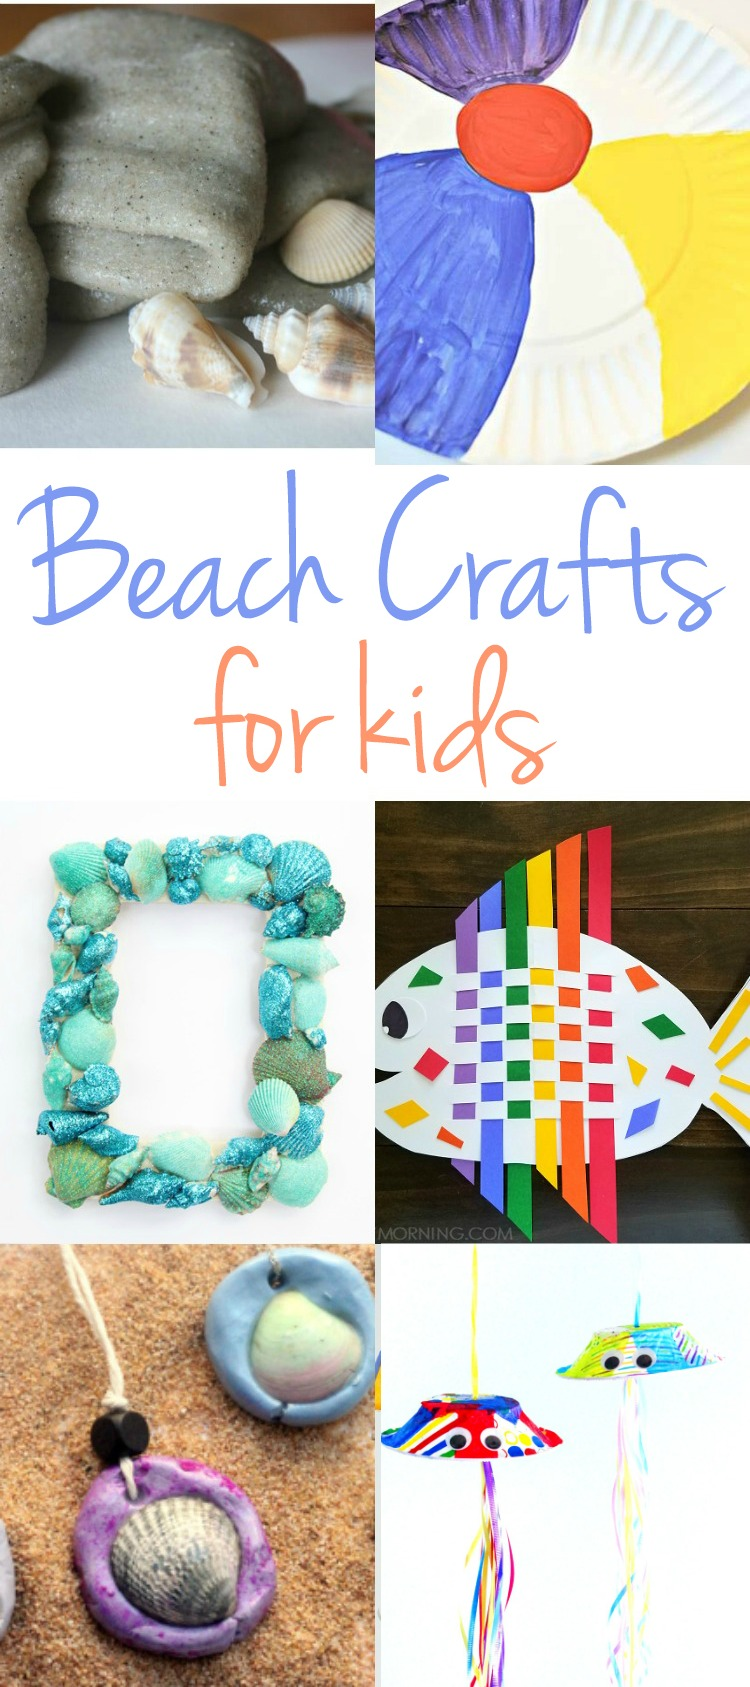 Beach Themed Crafts for Kids, Beach Crafts for Kids, Beach Slime, Shell Crafts, Beach Crafts for Preschoolers, Easy Beach Craft Ideas, Summer Fun Ideas